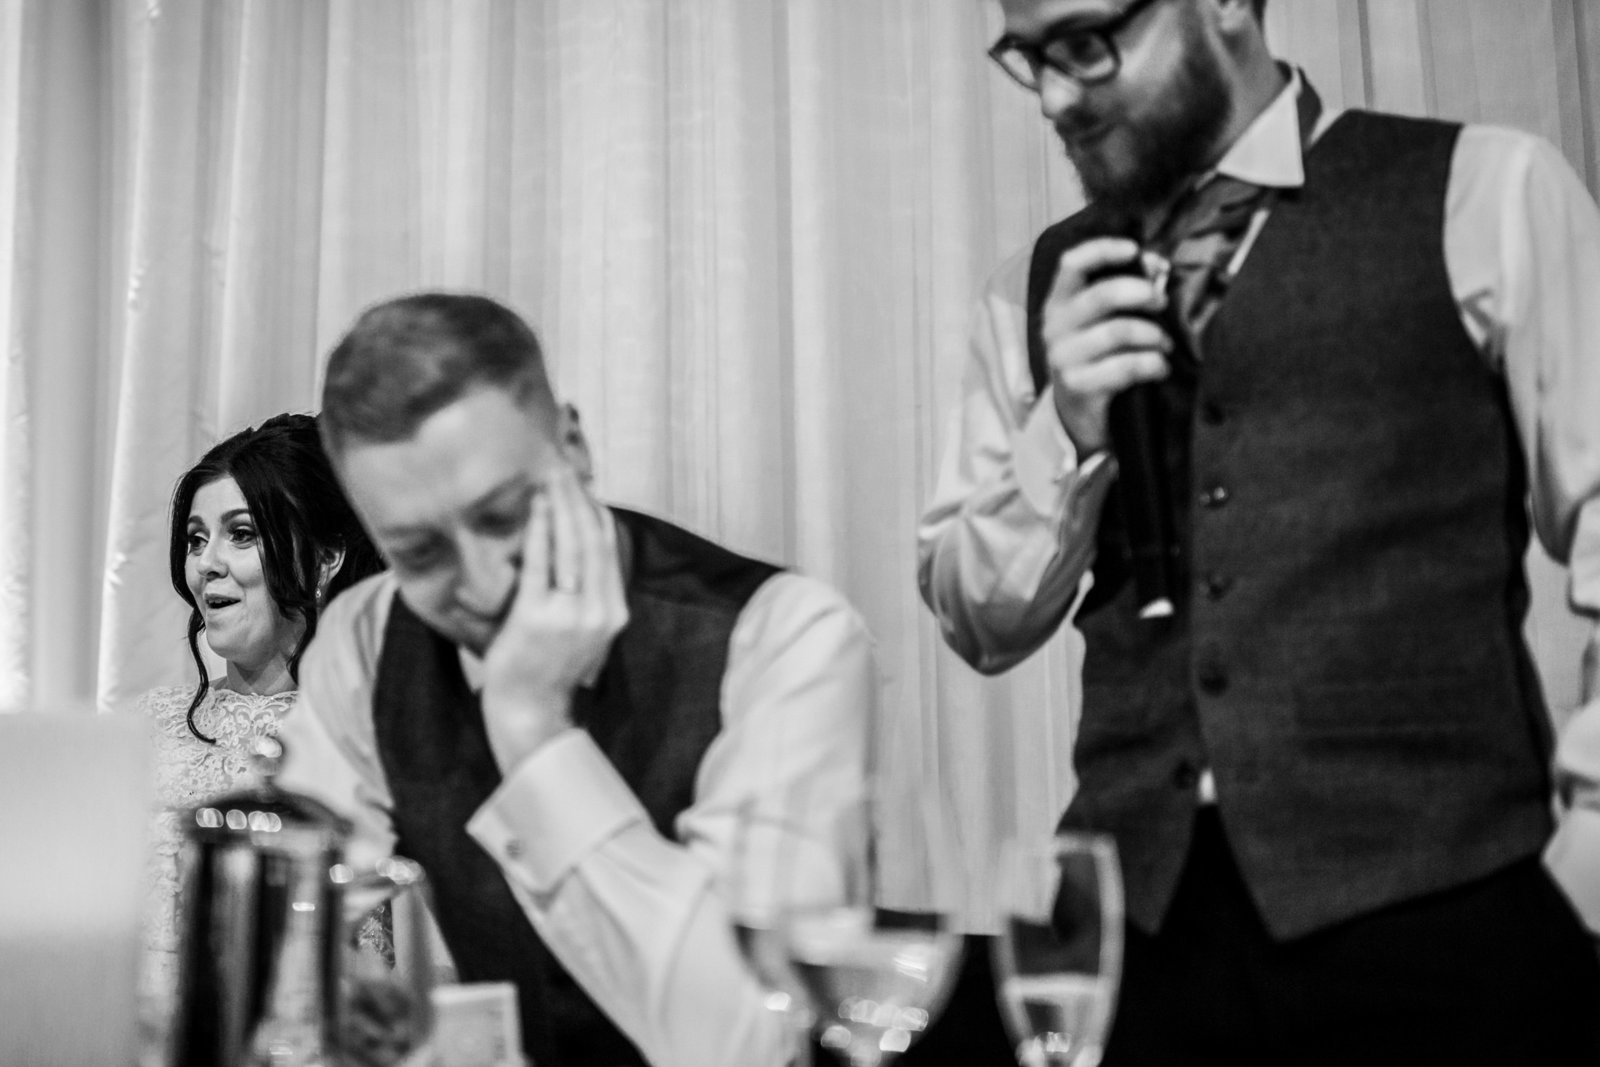 The Bestman is giving his speech at a wedding venue in Norfolk. The Grooms looks embarrassed and the Bride looks shocked.